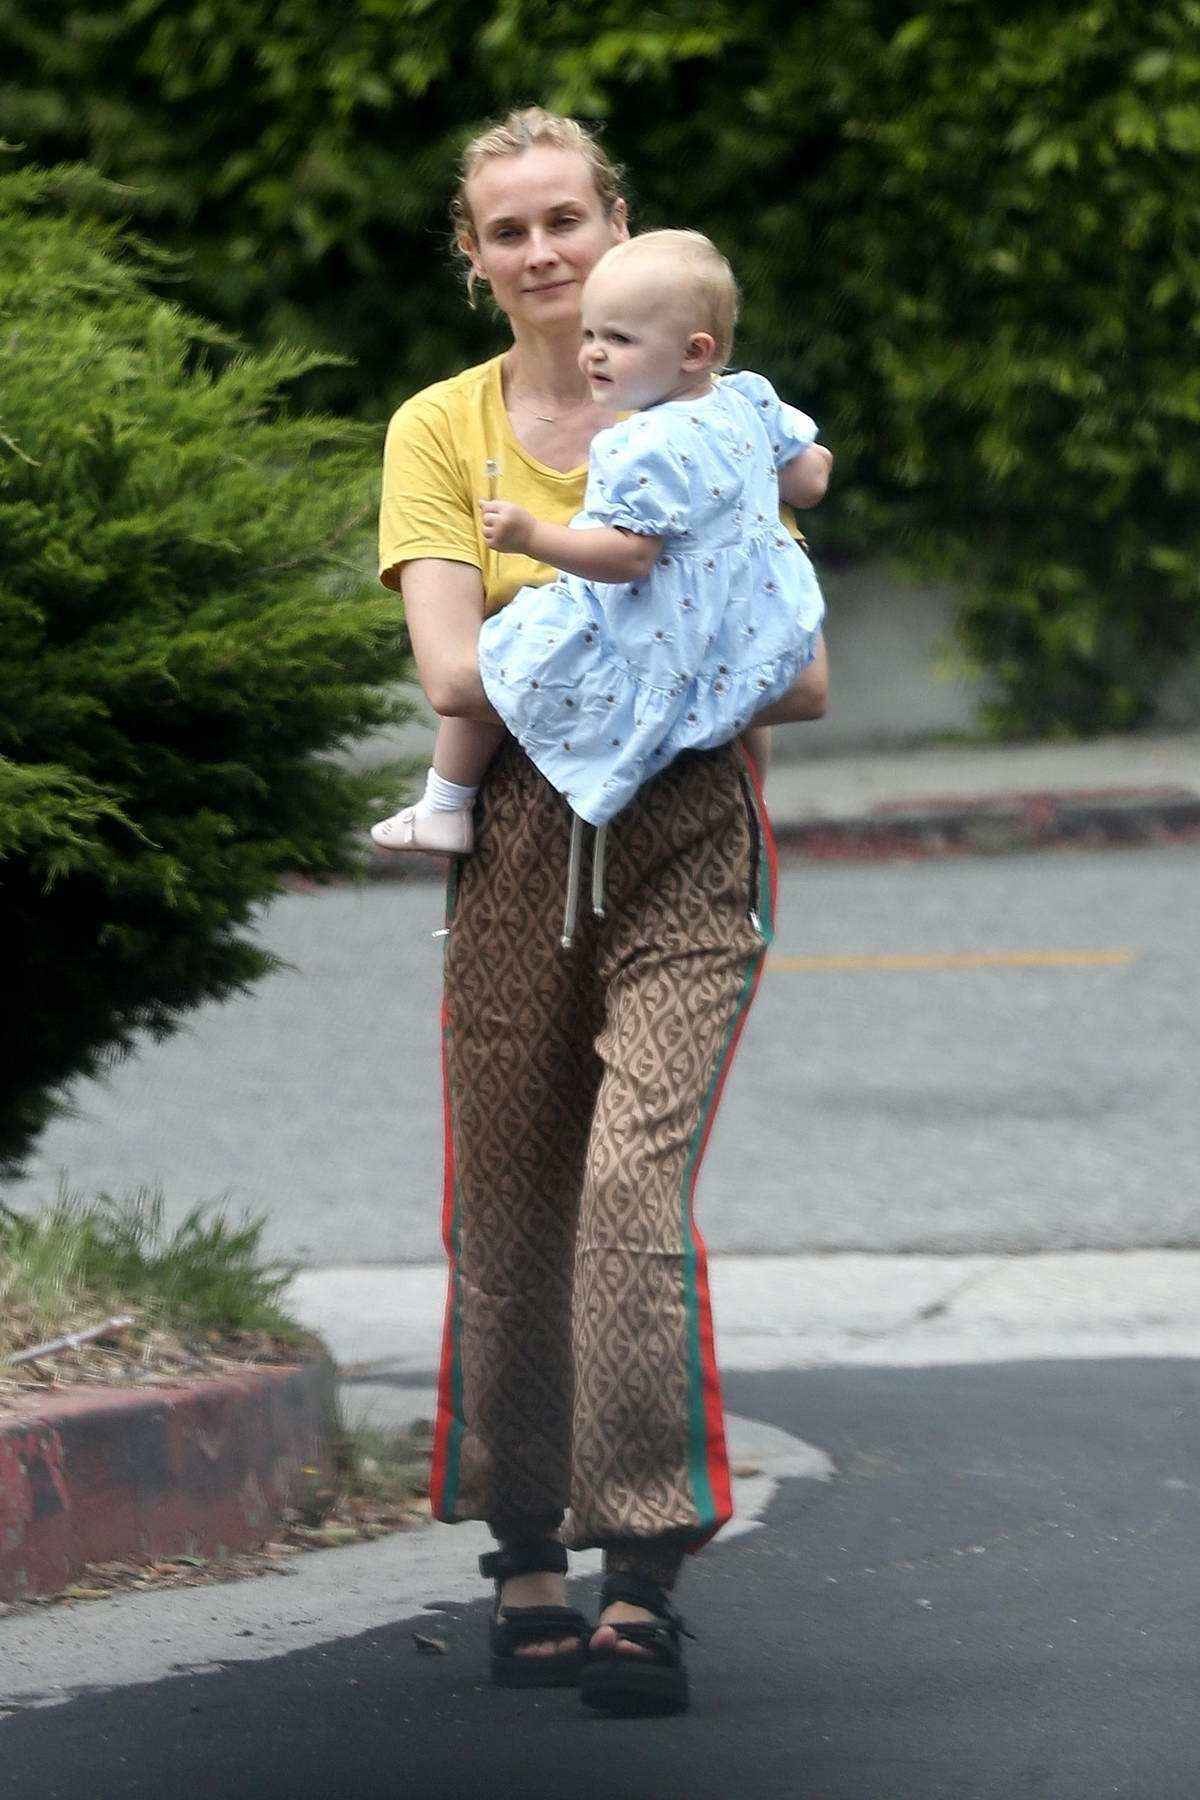 Diane Kruger takes her daughter out for some fresh air around the neighborhood in Los Angeles